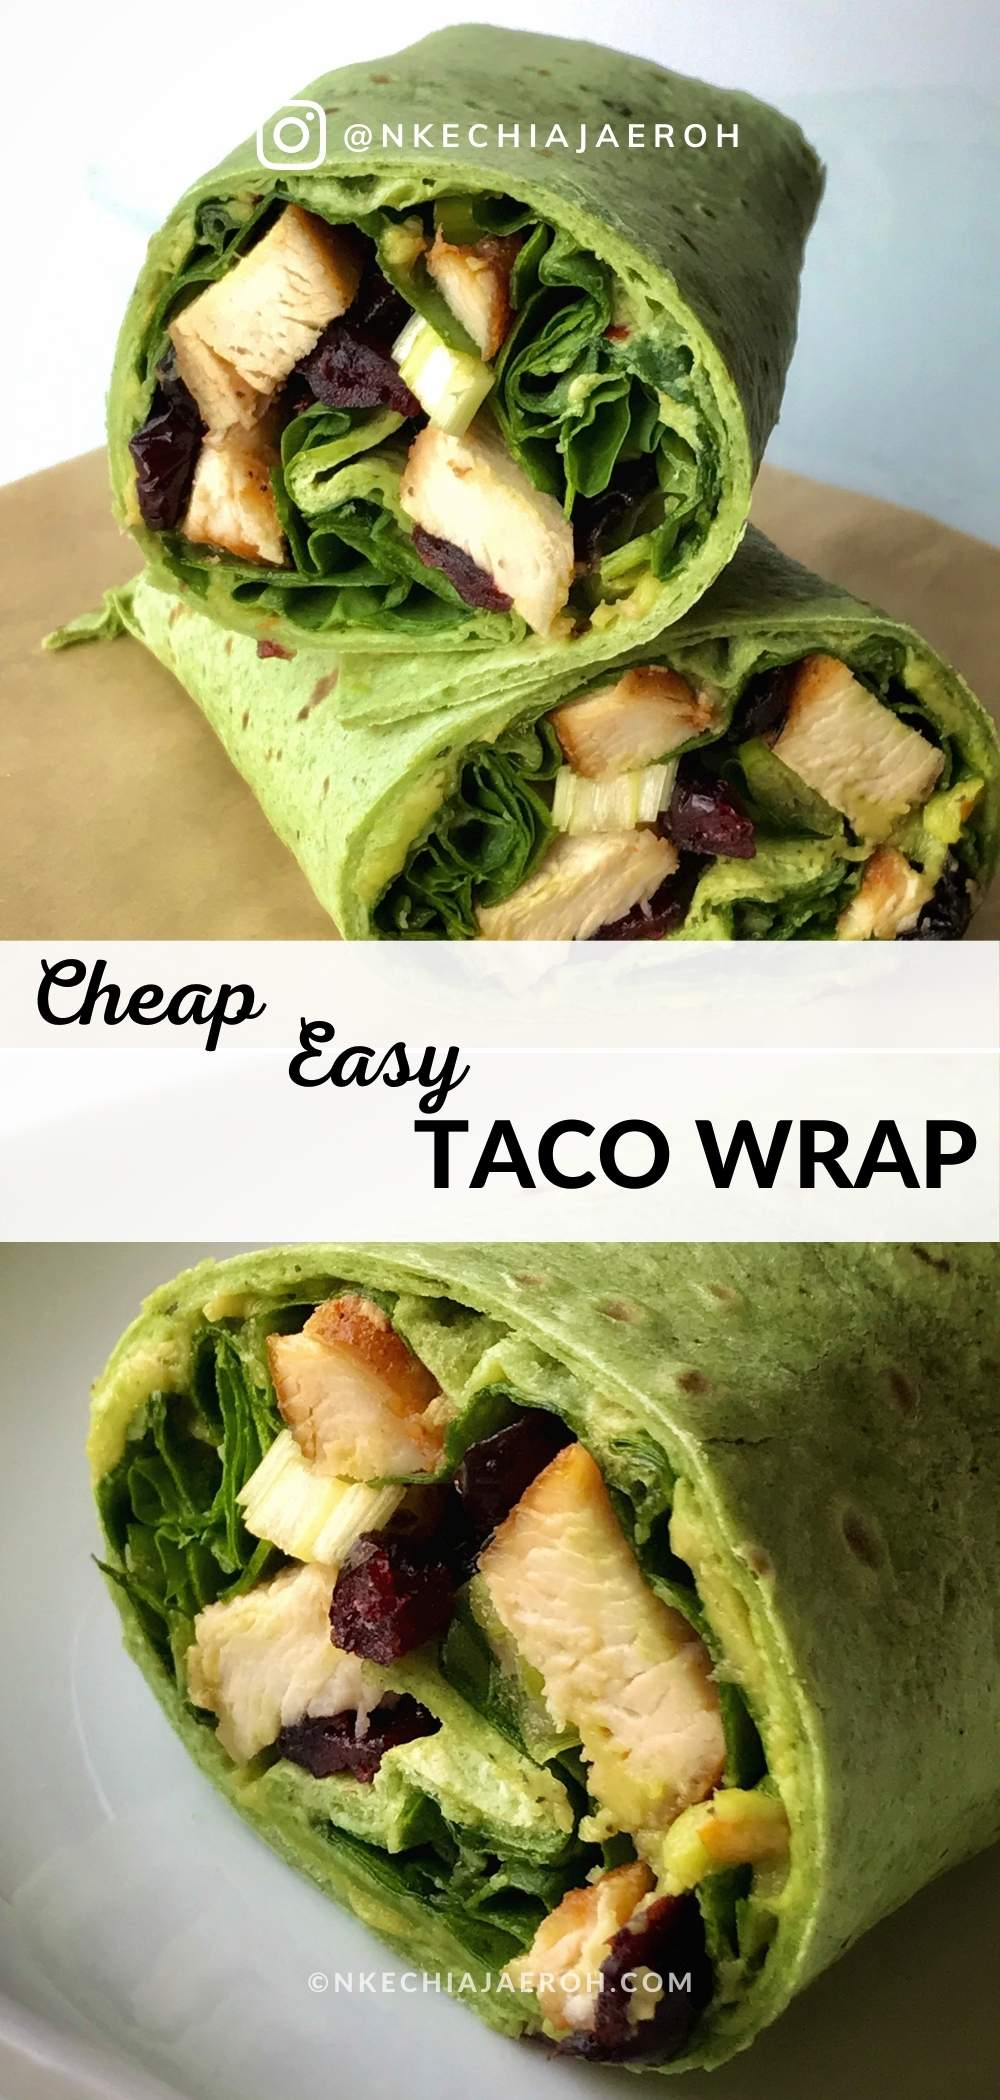 Best Taco Wrap Recipe! This super easy-to-make healthy taco wrap is the cheapest and easiest taco recipe you ever need. Gladly this simple but satisfying spinach chicken wrap is perfect for a quick lunch or busy weeknight dinners. All you need is five ingredients and 2 steps.  First, warm your taco (according to the manufacturer's instructions), and then fill it up with the ingredients!  Make this for Taco Tuesday and ENJOY! #Taco #Tacowrap #healthytaco #tacotuesday #tuesdaytaco #easylunch